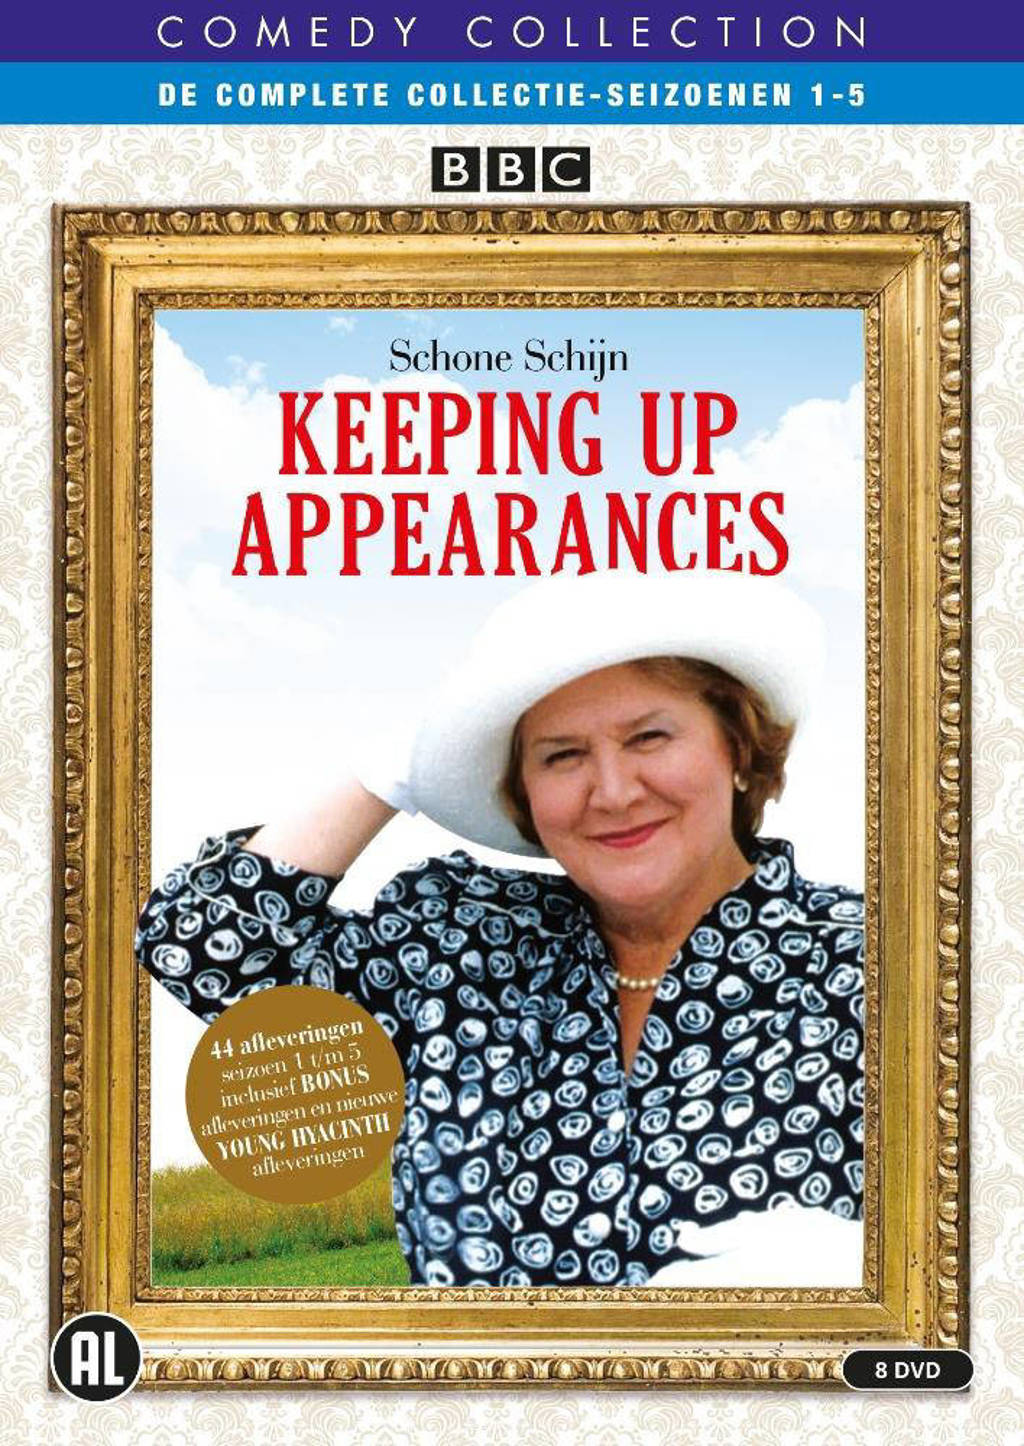 Keeping up appearances - De complete collectie (DVD)